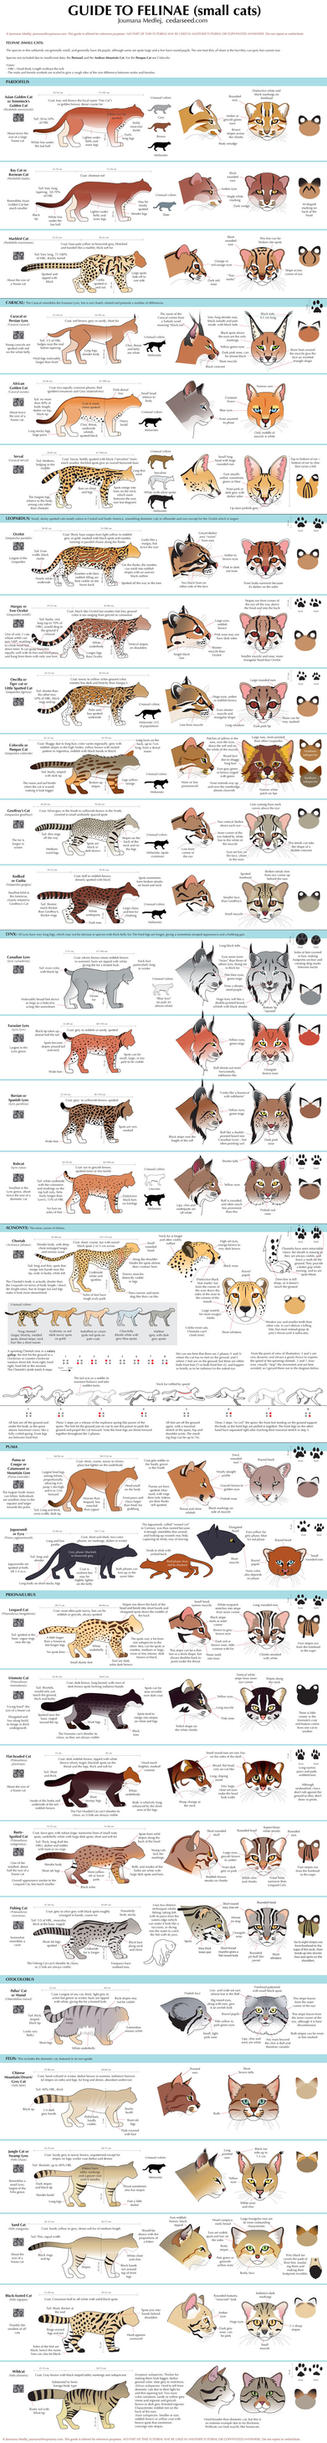 Guide to Little Cats by Majnouna